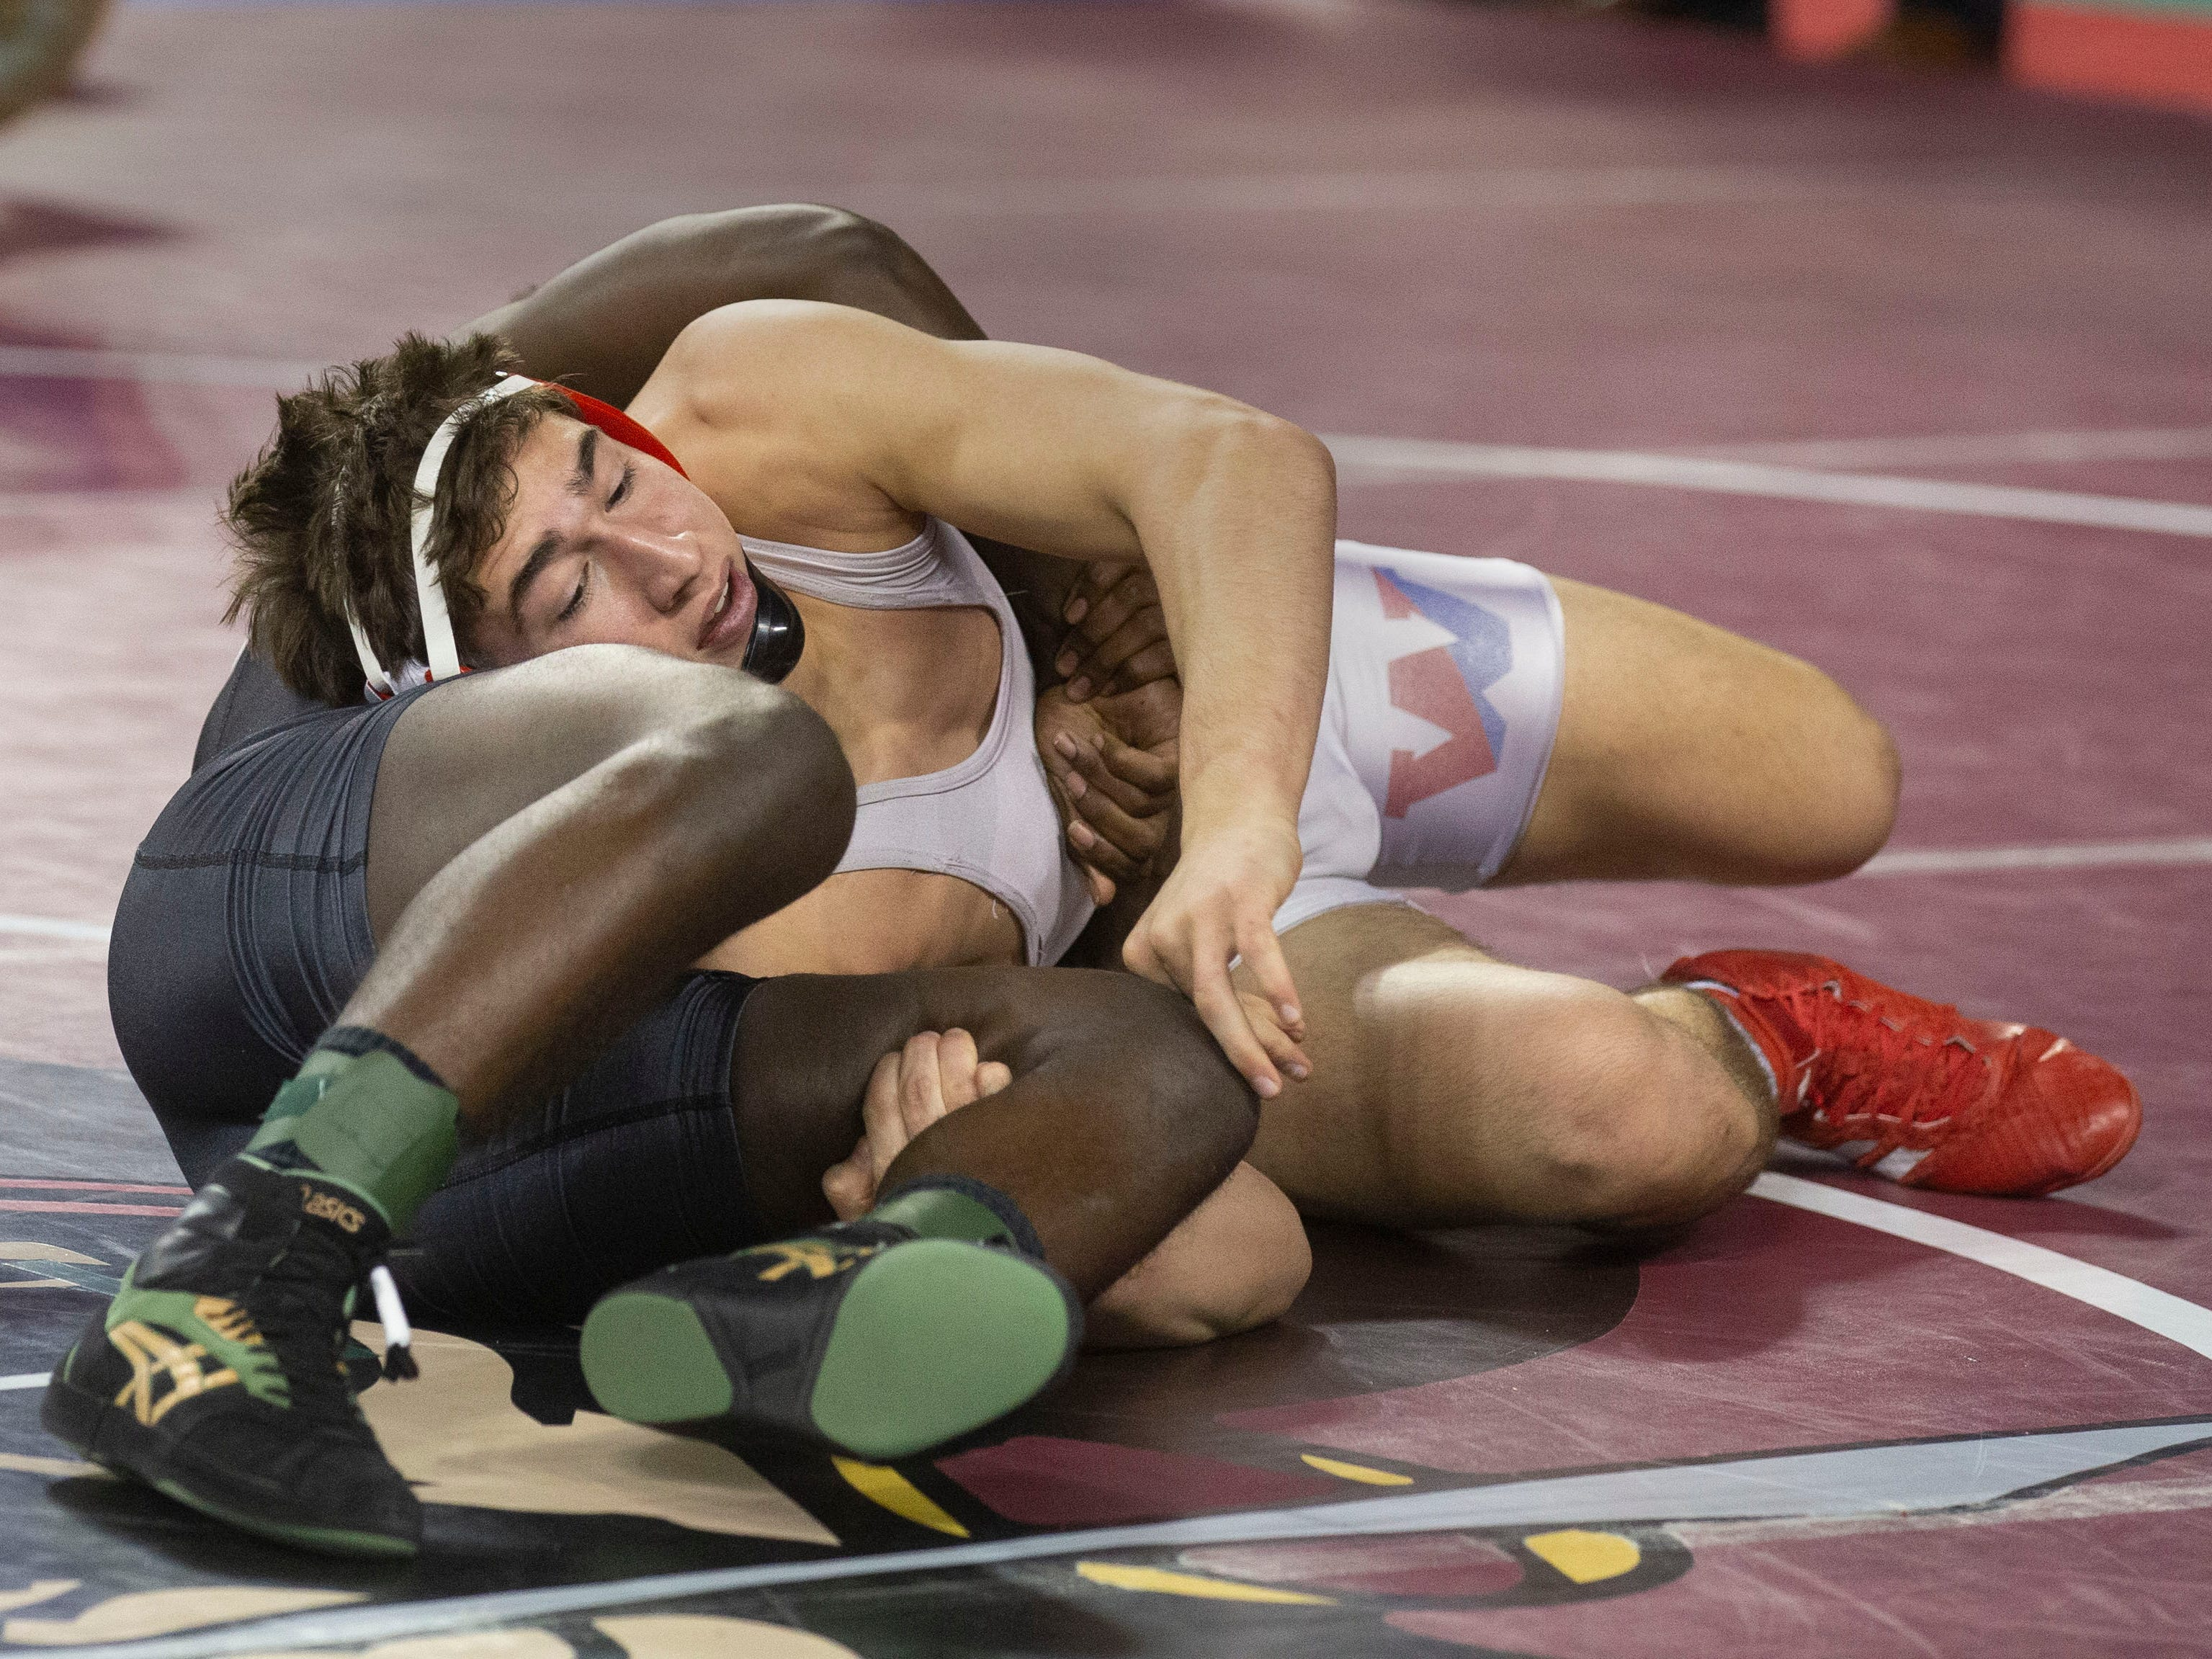 Wall's Rob Kanniard defeated Pemberton's Joseph Wilson 12-2 in their 160 lbs. bout. NJSIAA State Wrestling opening rounds in Atlantic City, Thursday February 28, 2019